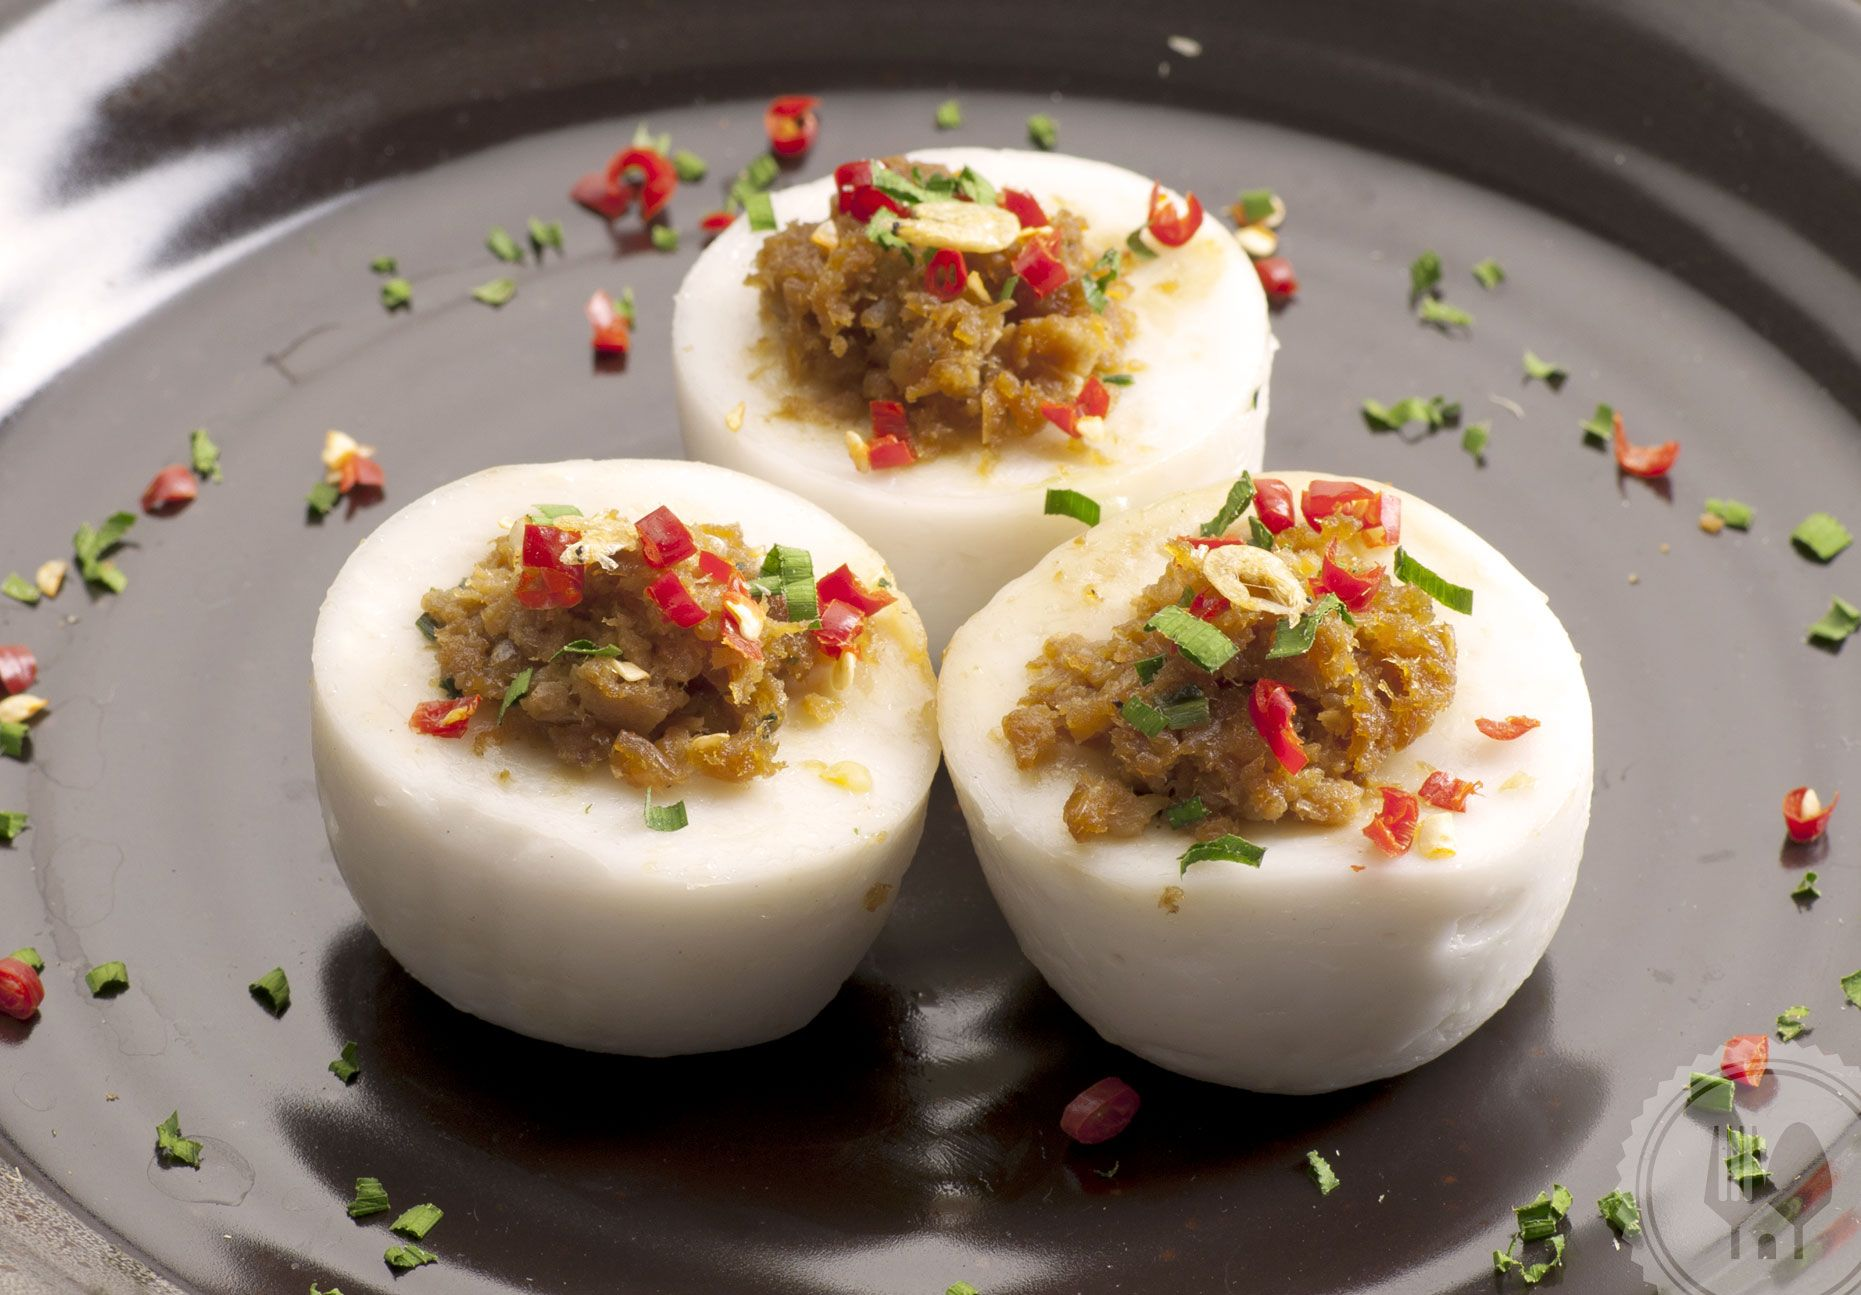 Kue Talam Ebi Sticky And Chewy Savory Delight Of Dried Shrimp And Coconut Milk Resep Resep Kue Makanan